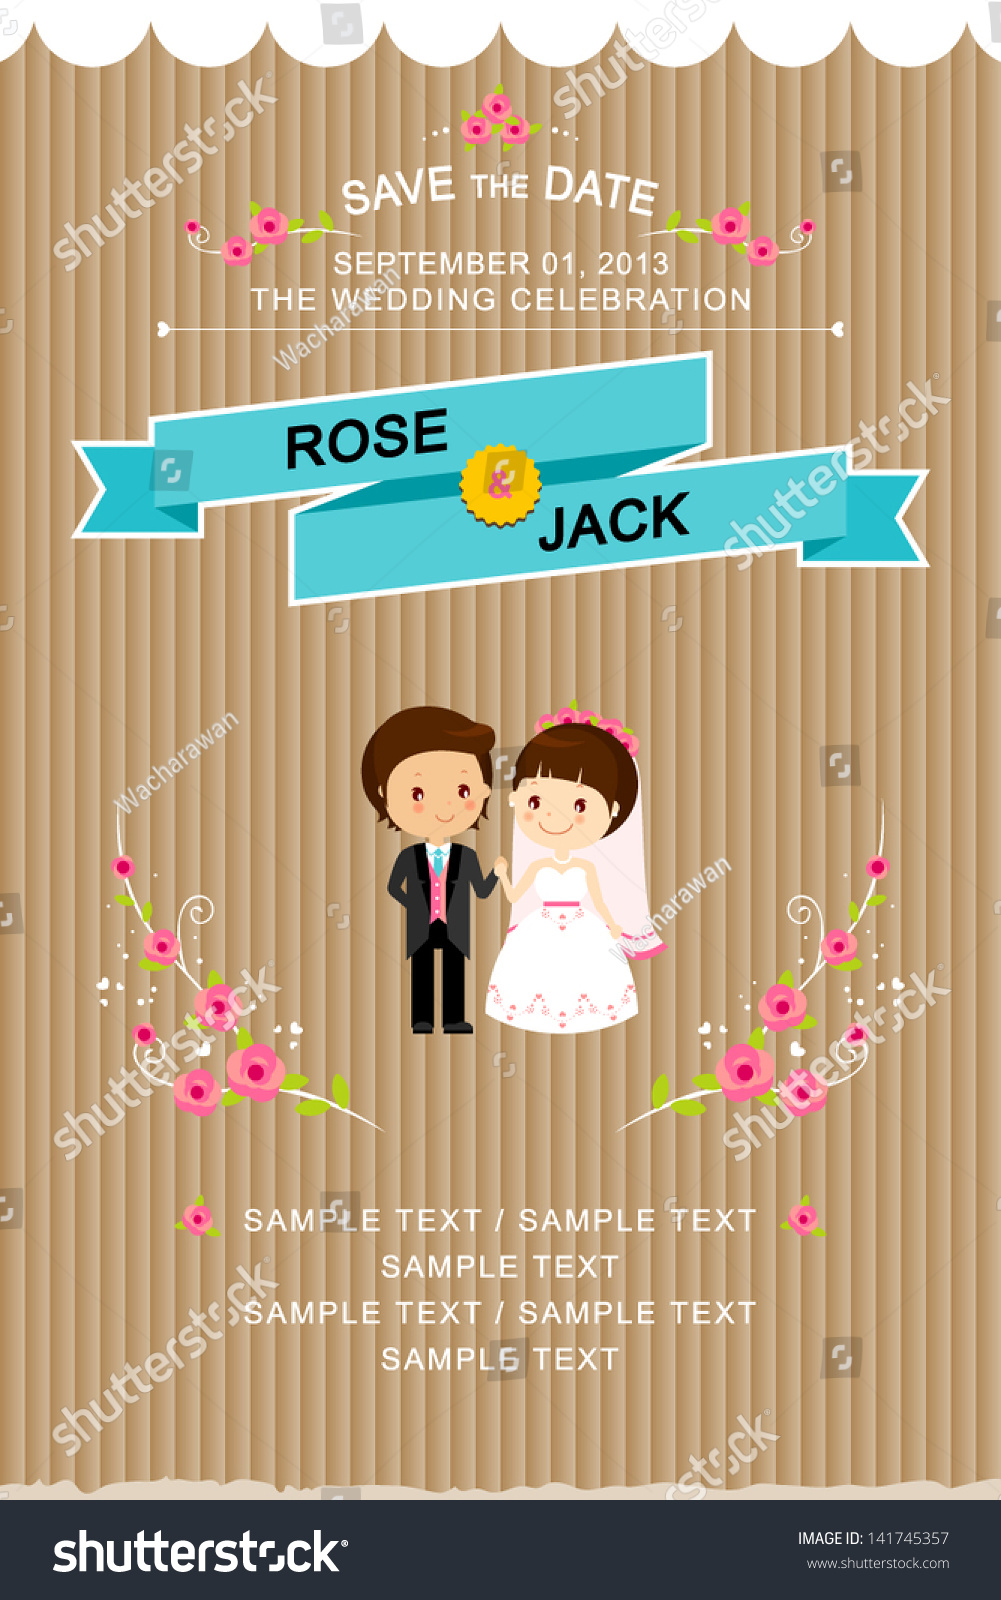 cute wedding invitations cute wedding invitations wedding invitation card with cute groom and bride cartoon royalty free stock images